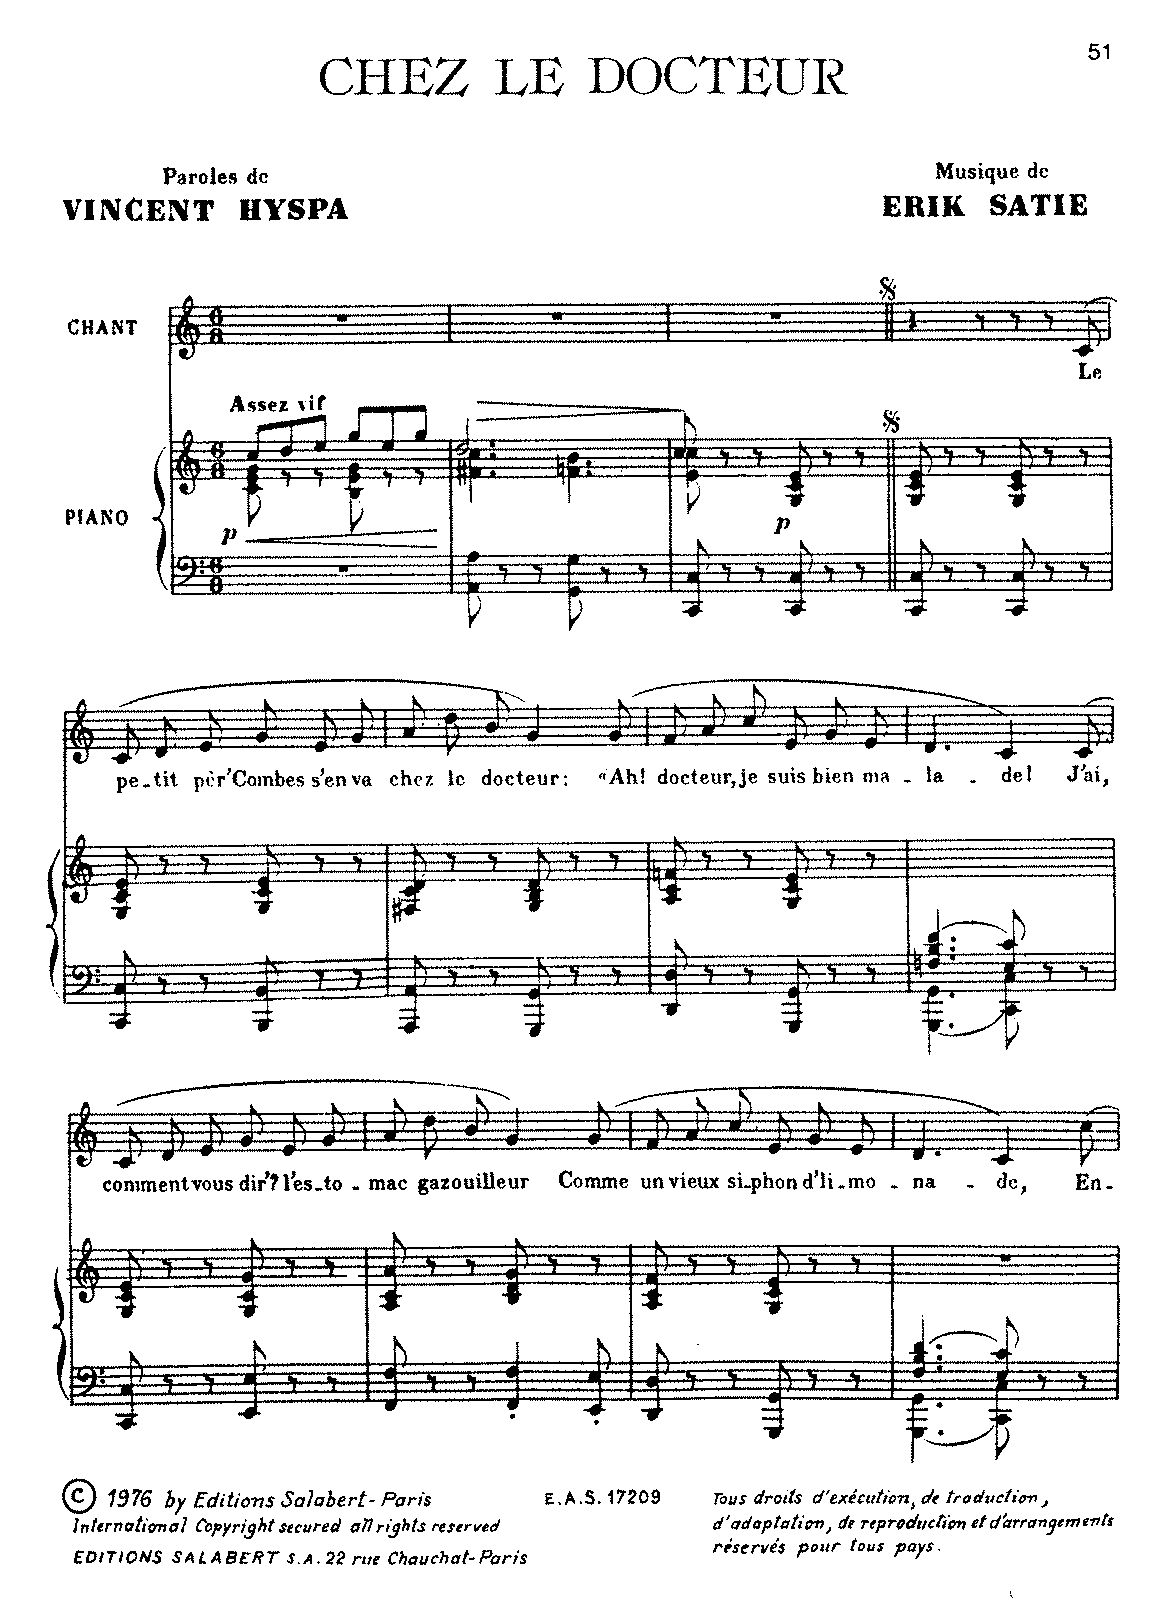 PMLP189385-Satie - Chez le Docteur (voice and piano).pdf